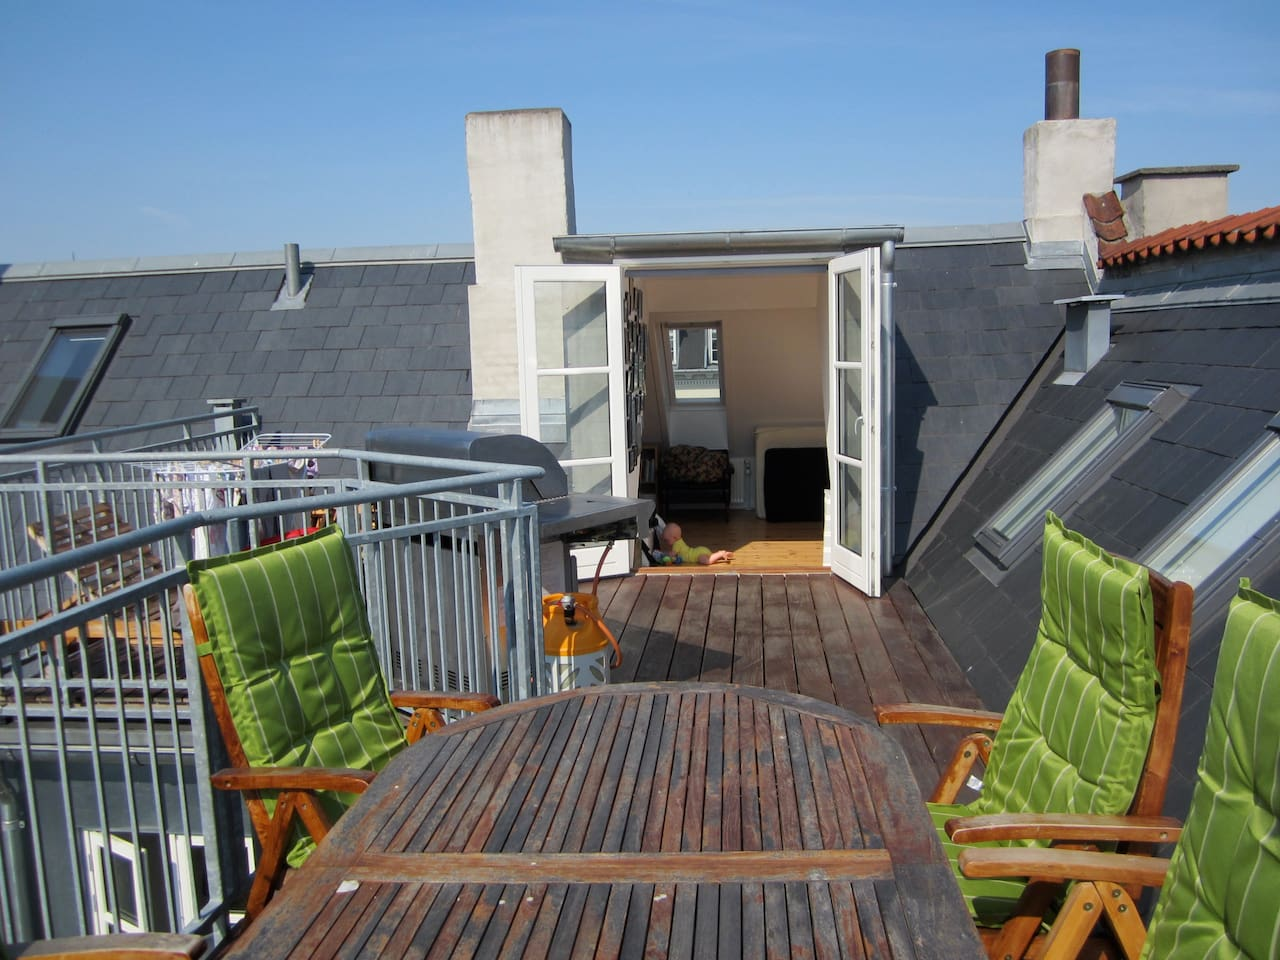 Roof terrace 22 sqm. Space for 8 dining persons, and a nice view over the city. Two sunbeds and a parasol as well.